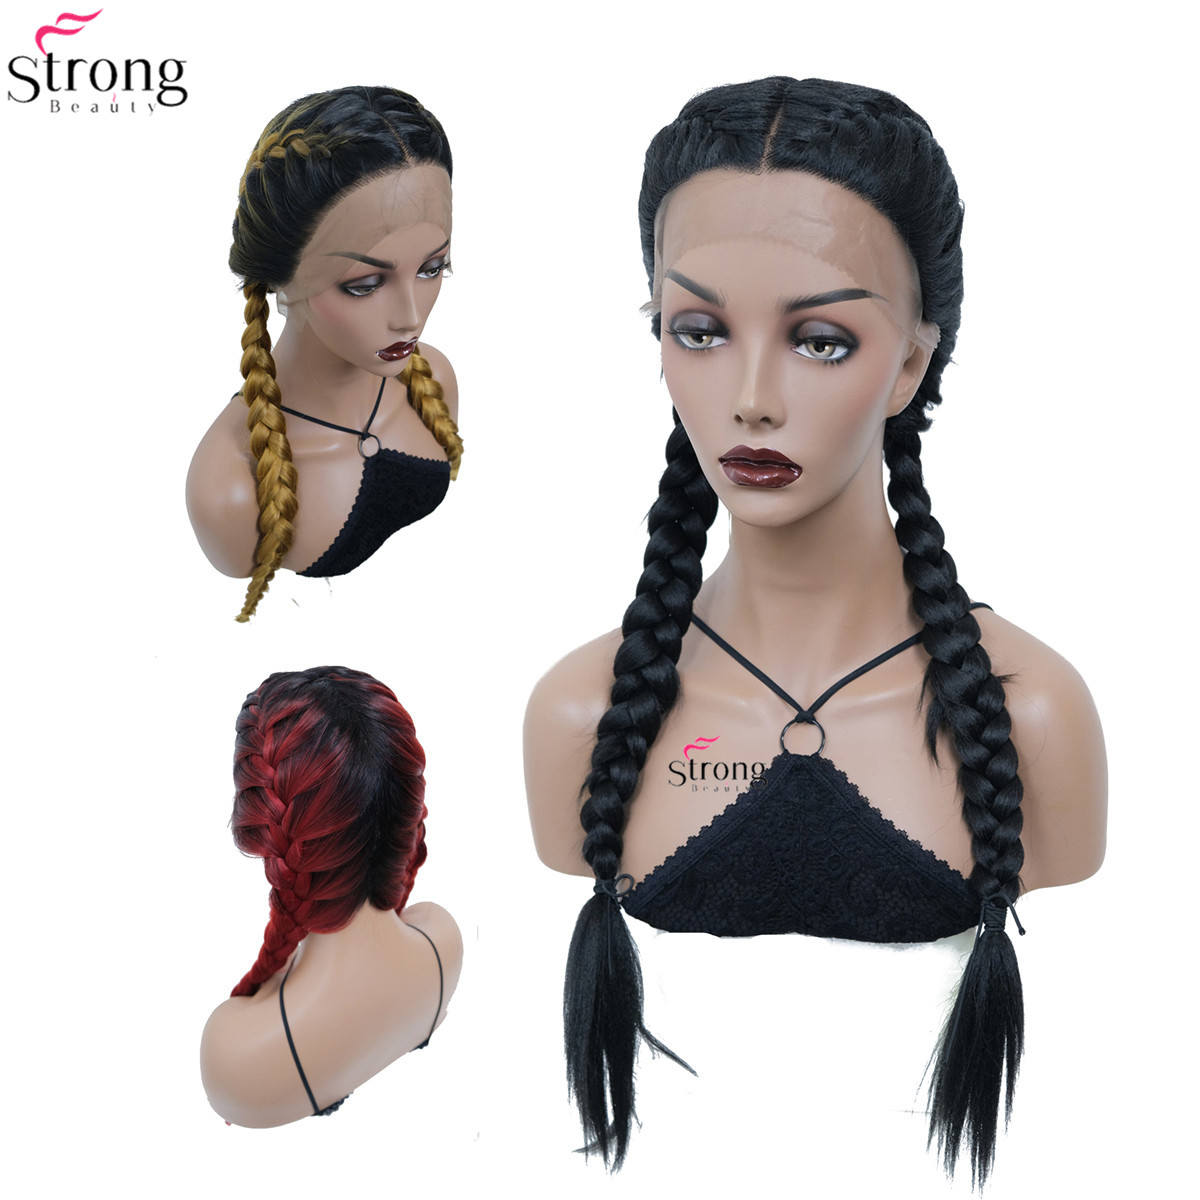 StrongBeauty Long Double Braids Wig Black/Red Roots Ombre Blonde Synthetic Braided Lace Front Wig